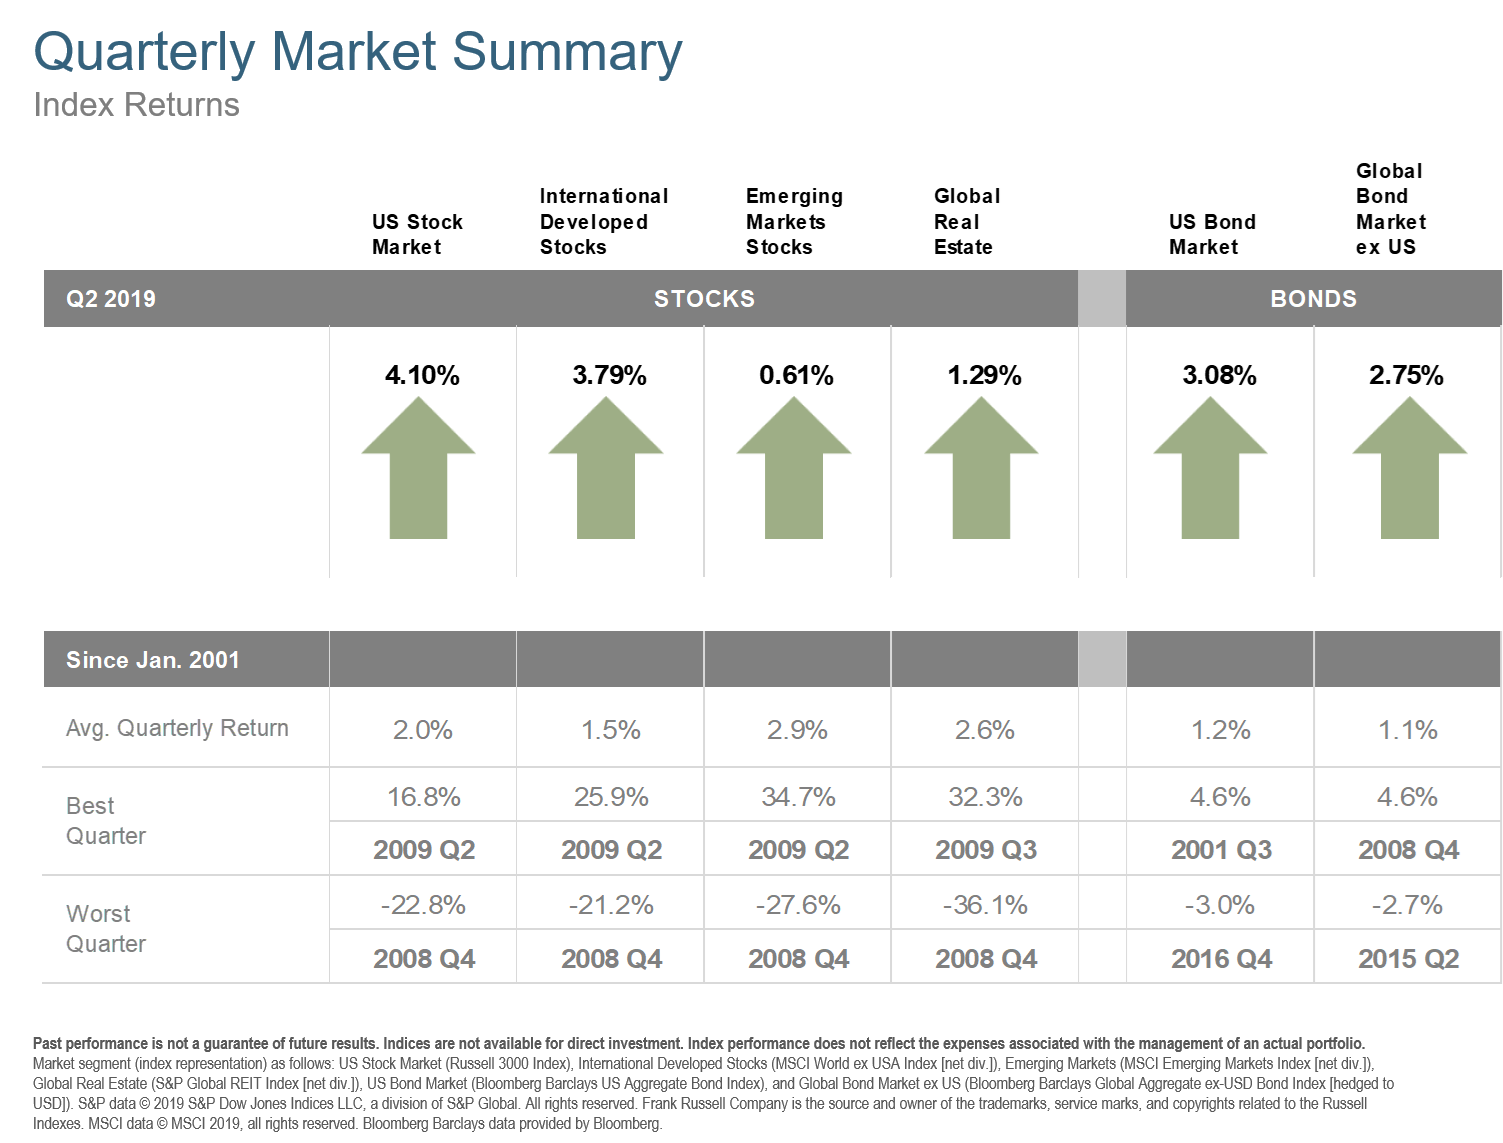 Q2 2019 Quarterly Market Summary